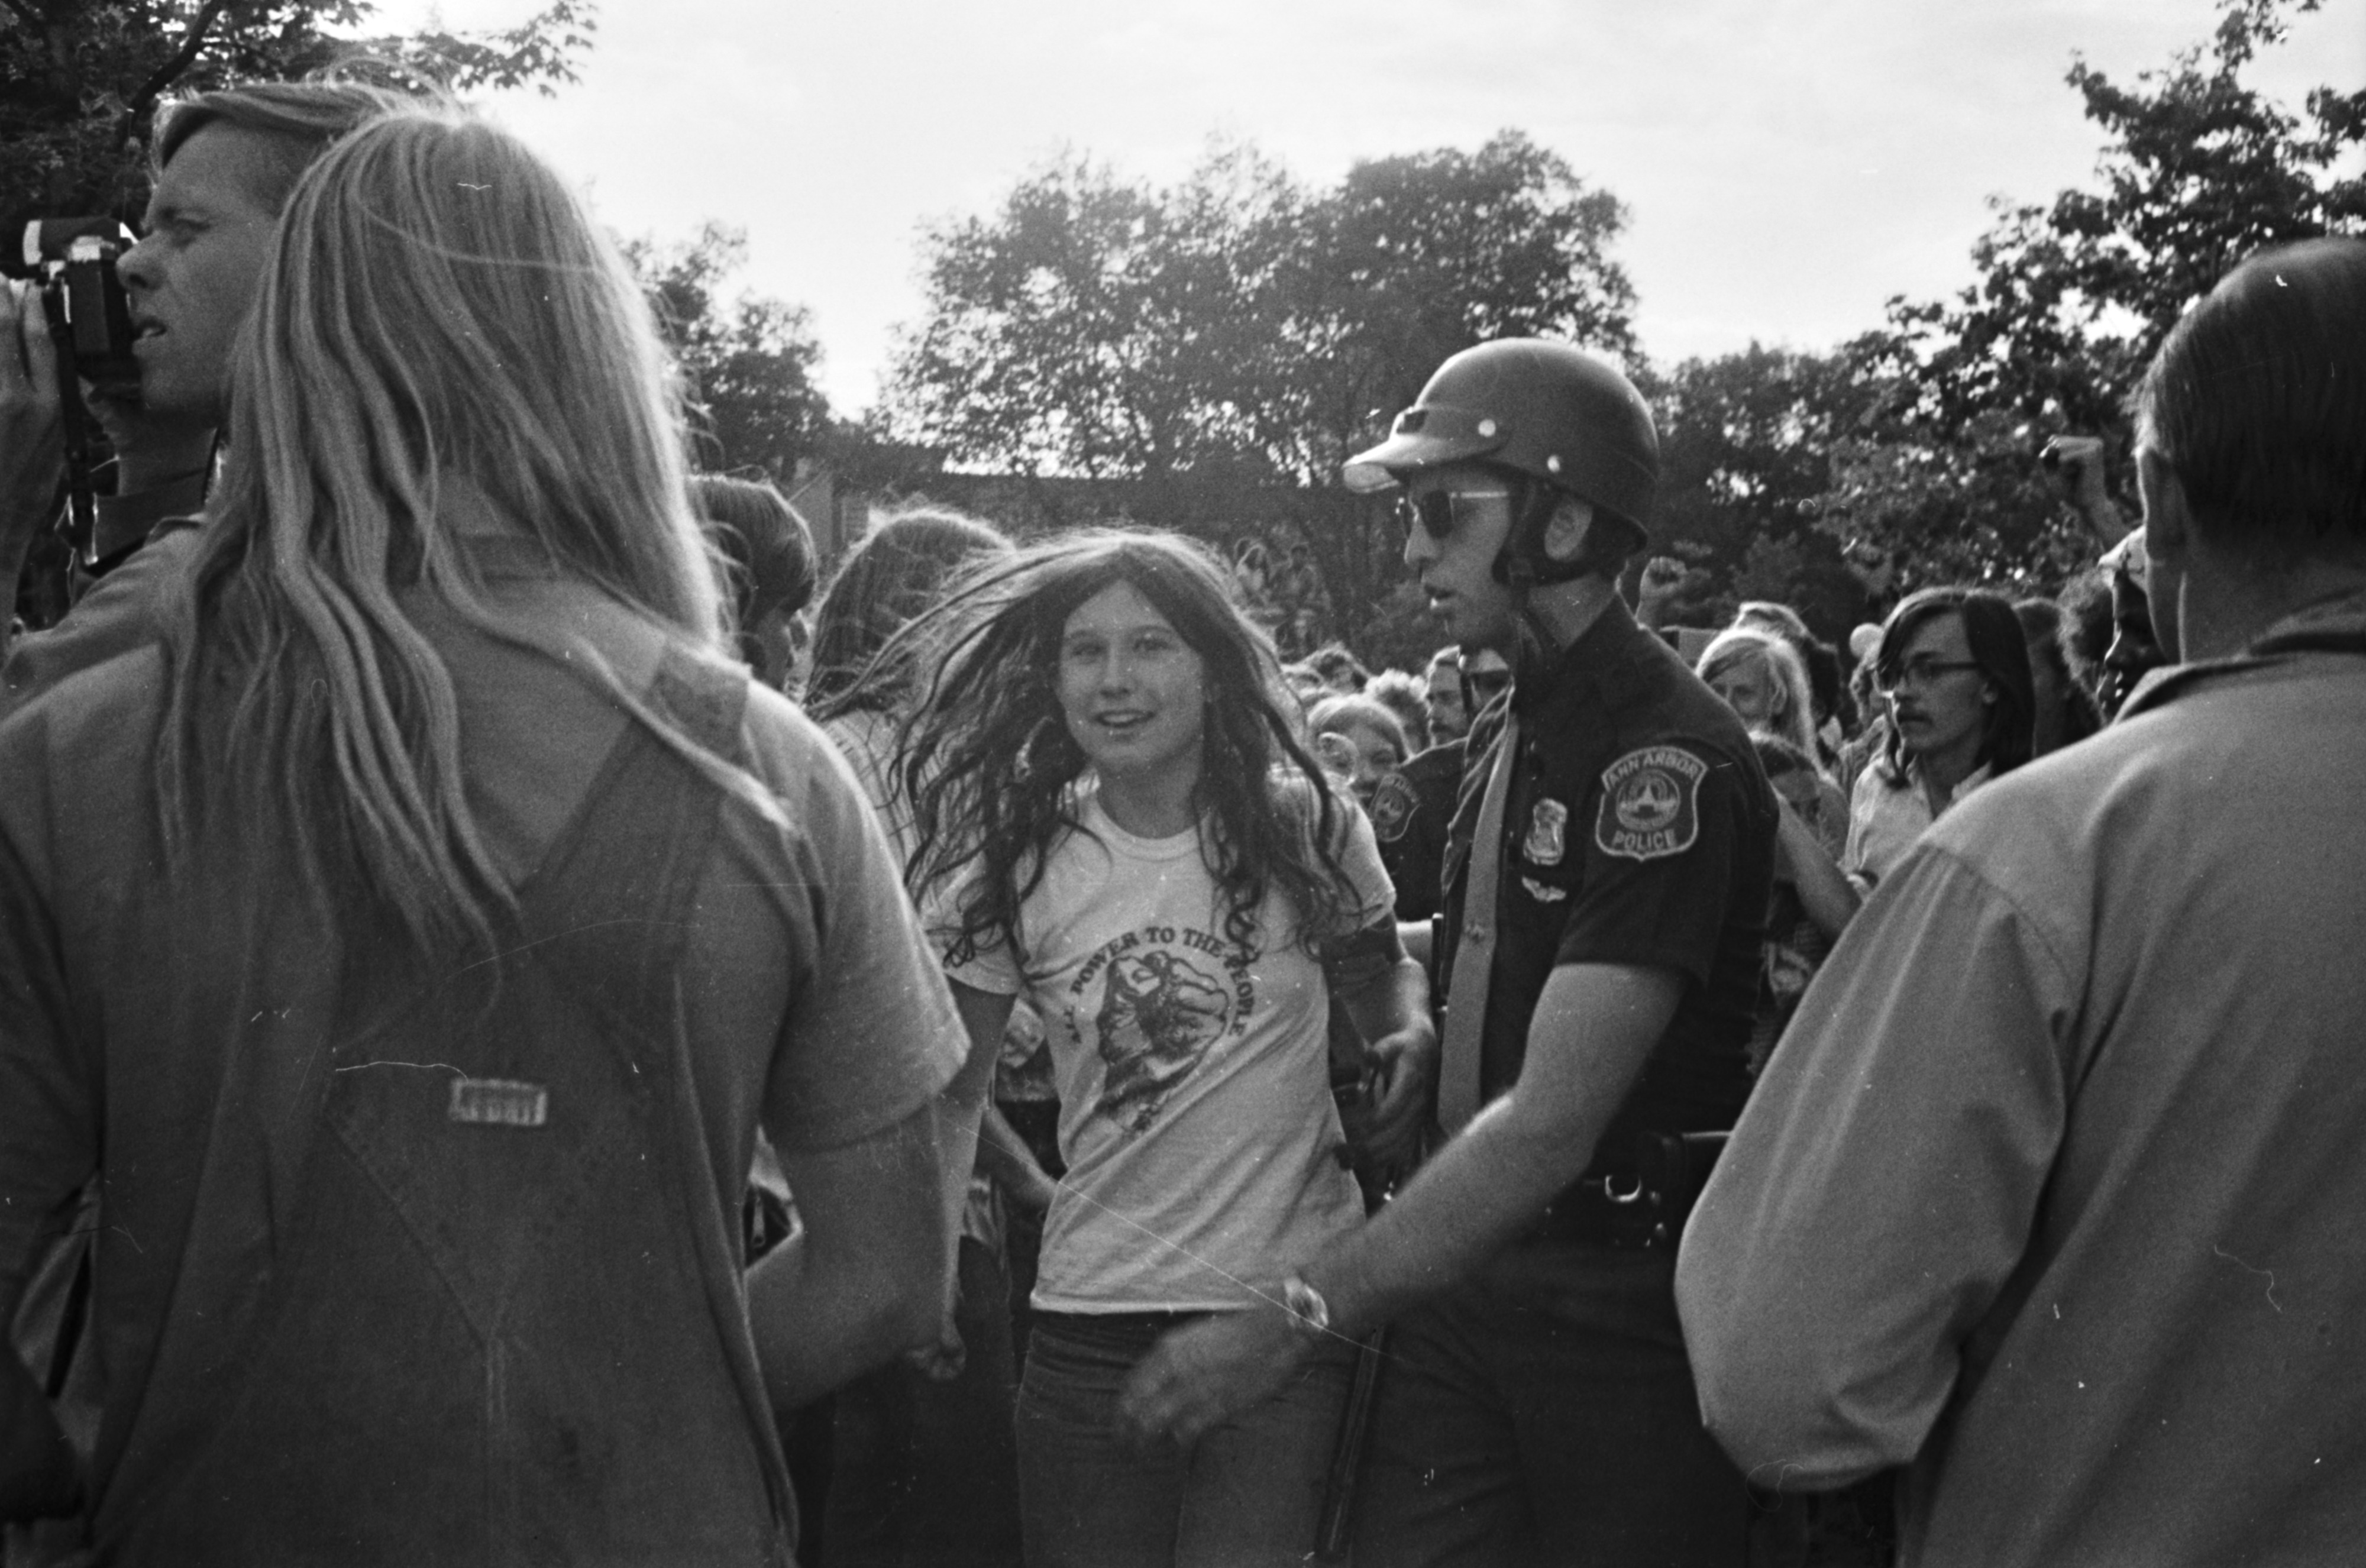 Vietnam War Protester and Police on U-M Campus Diag, June 1972 image